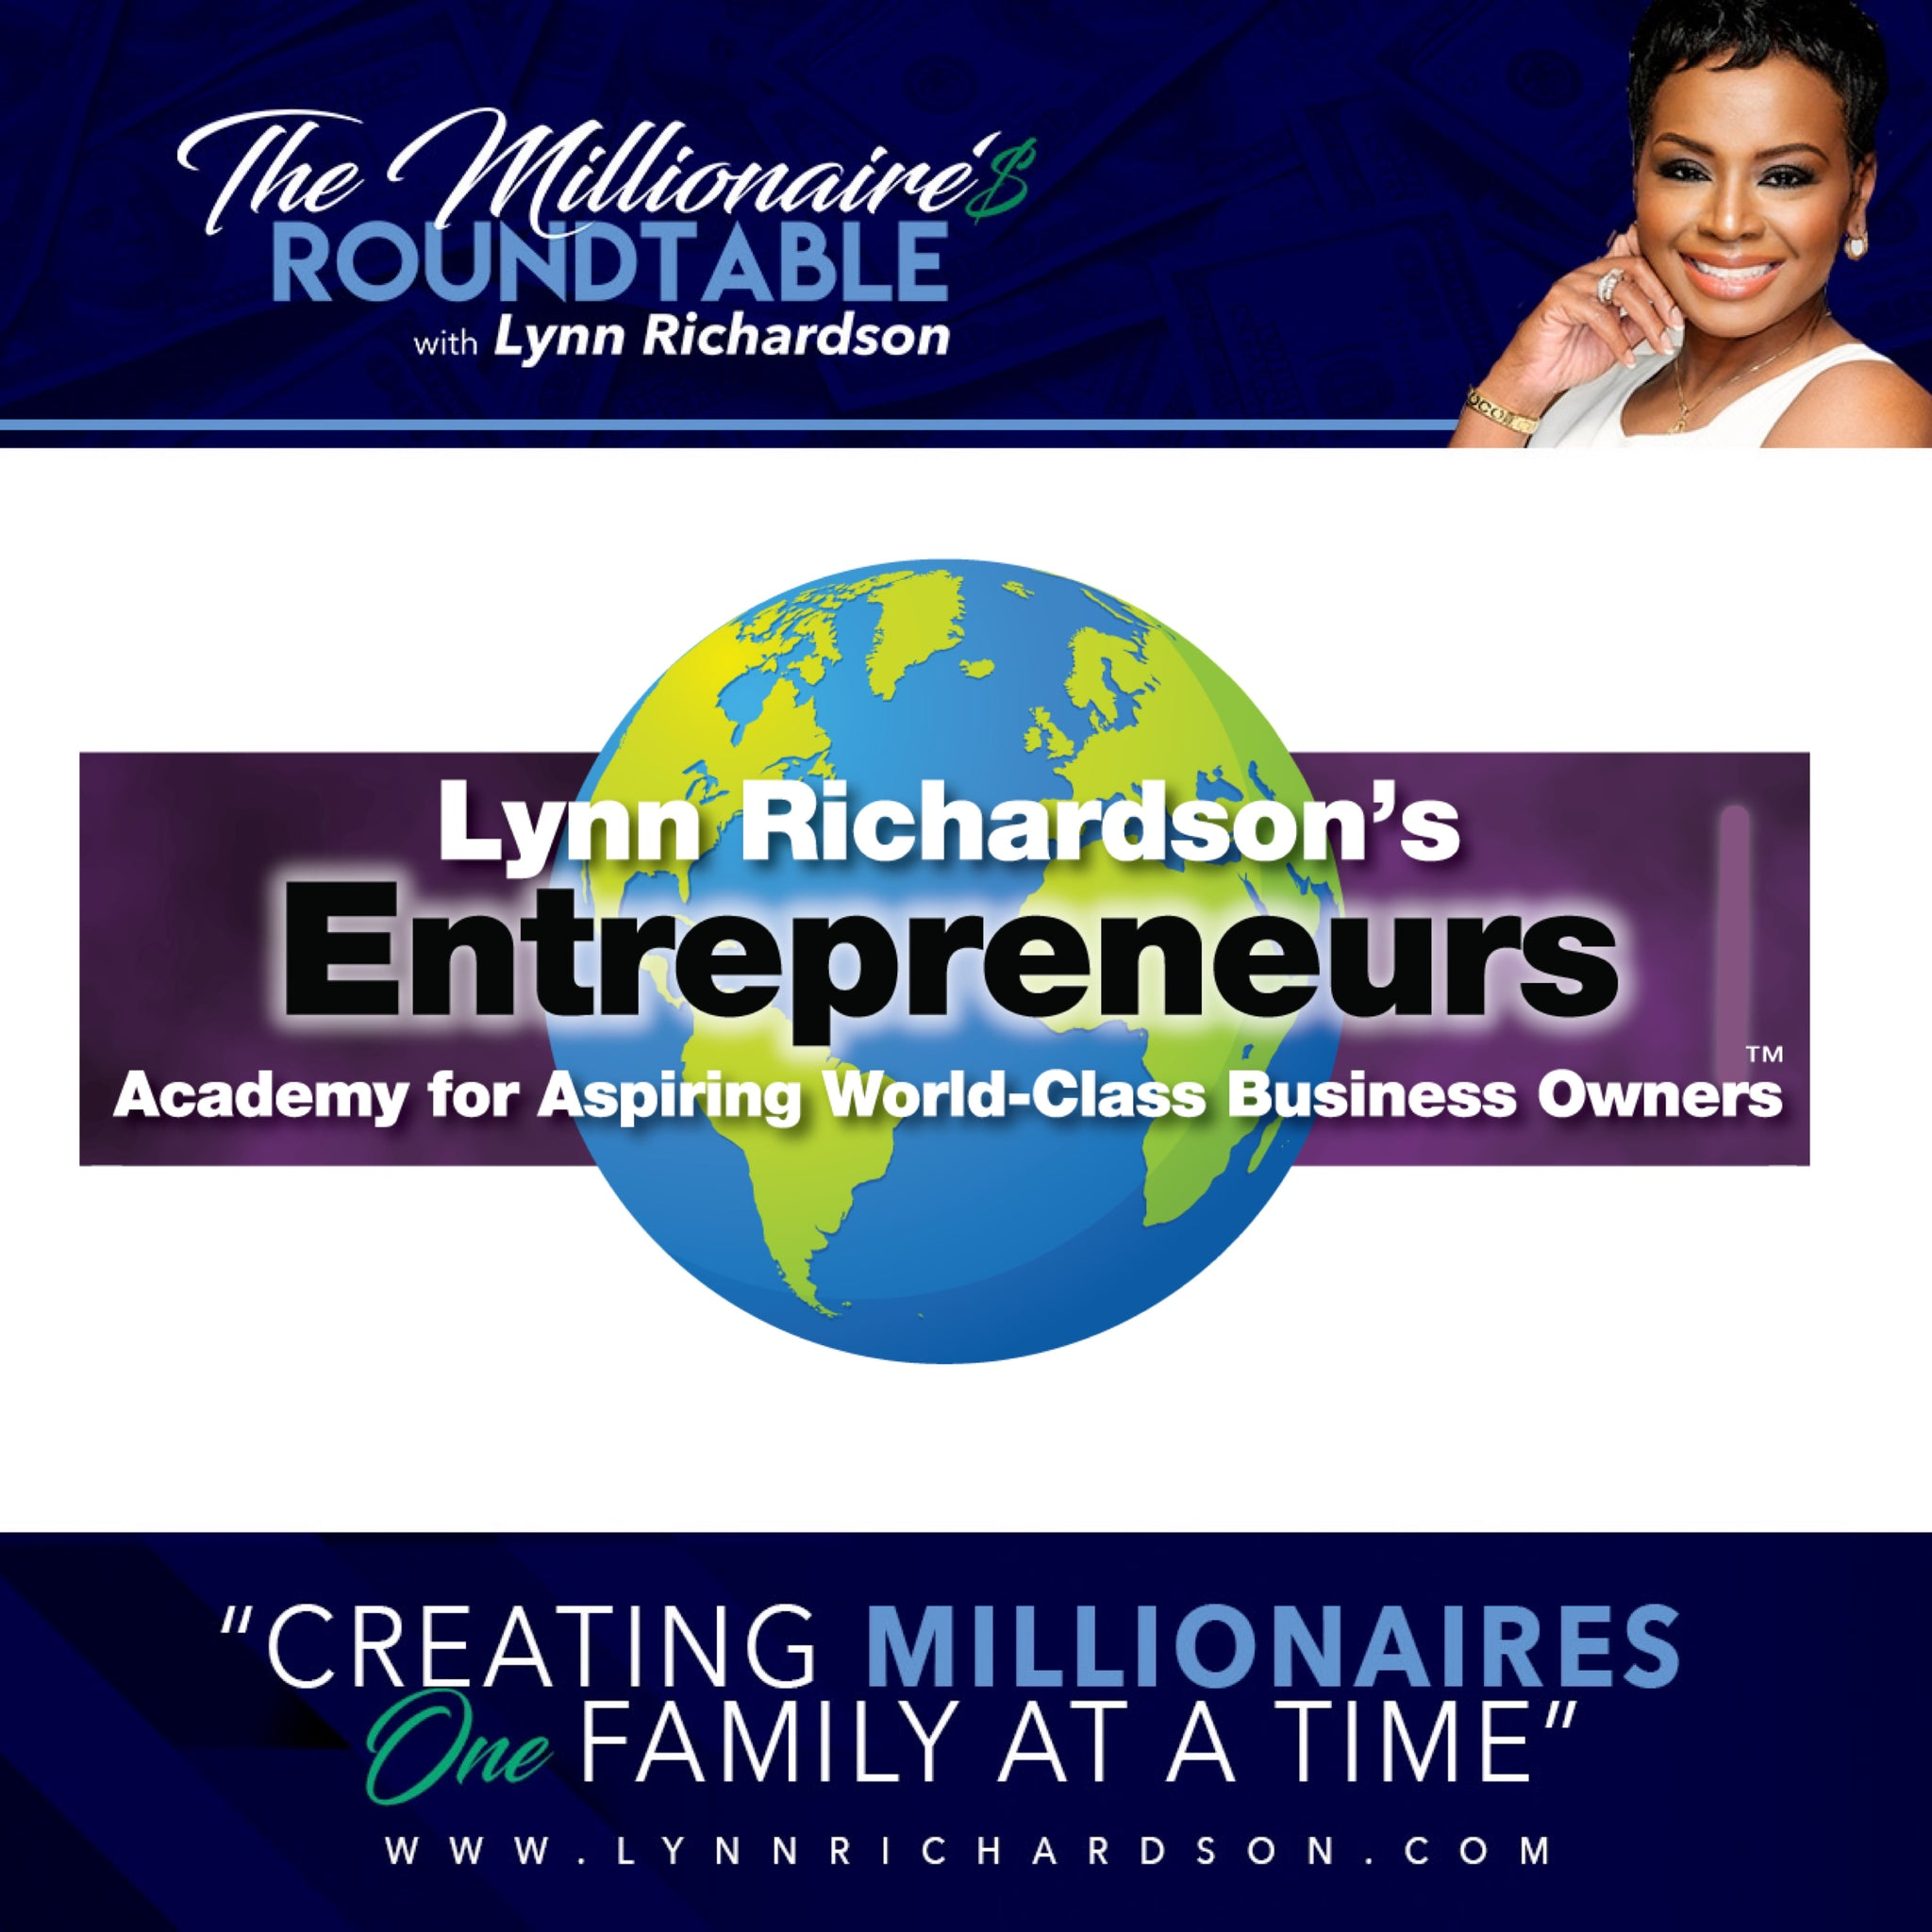 Lynn Richardson's Entrepreneurs Academy: Business Setup, Expansion, & Coaching